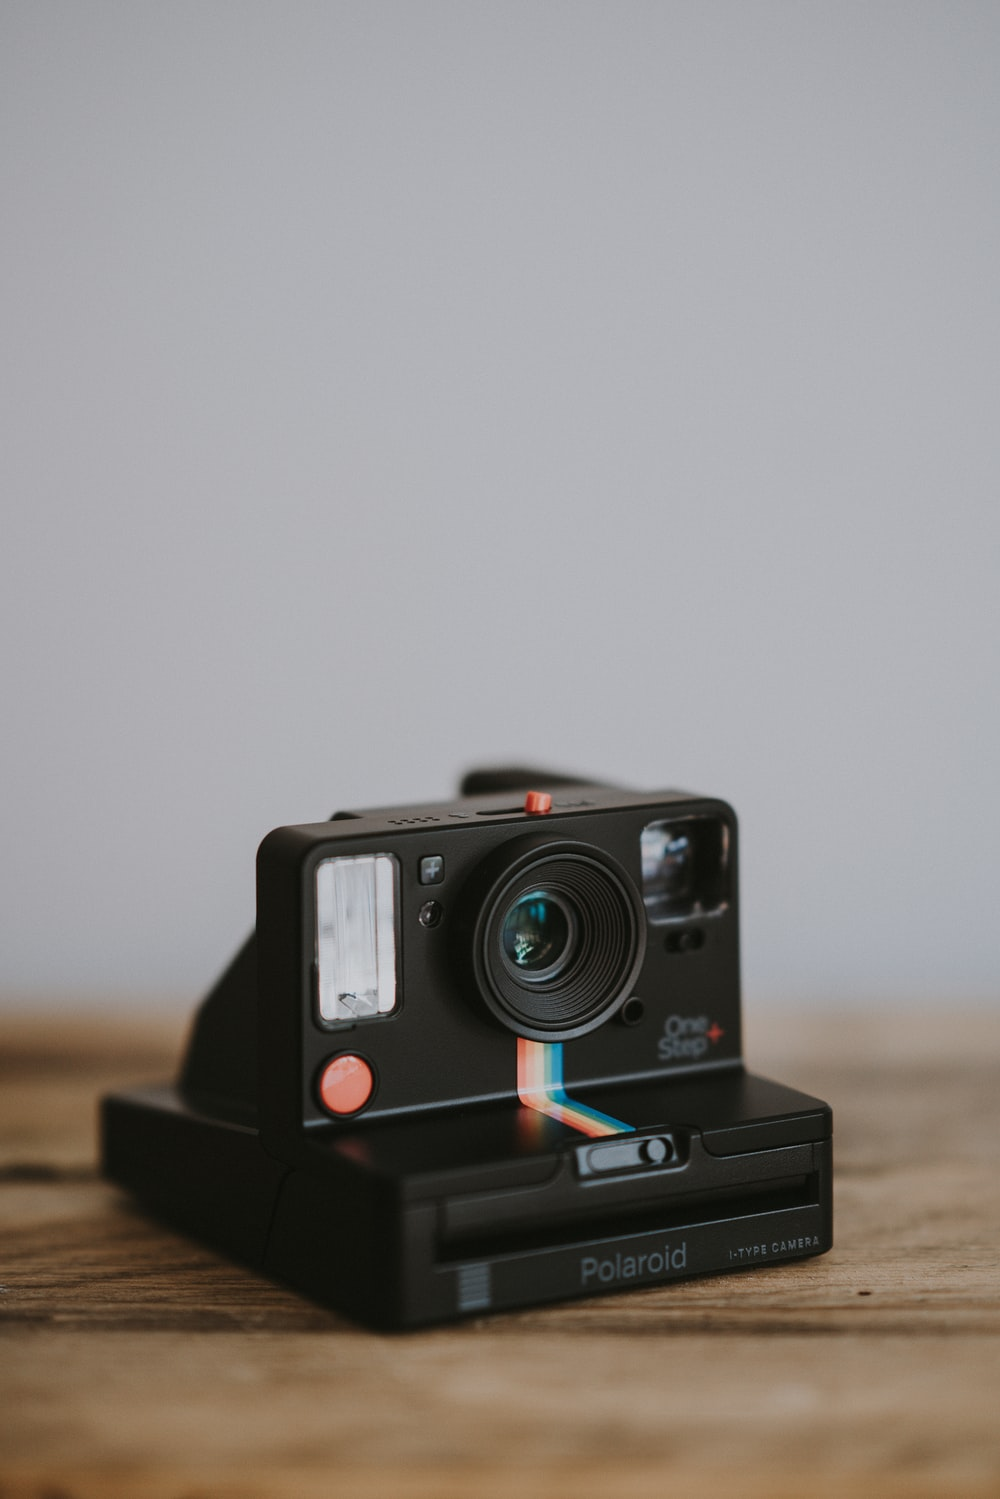 black instant camera on wooden surface